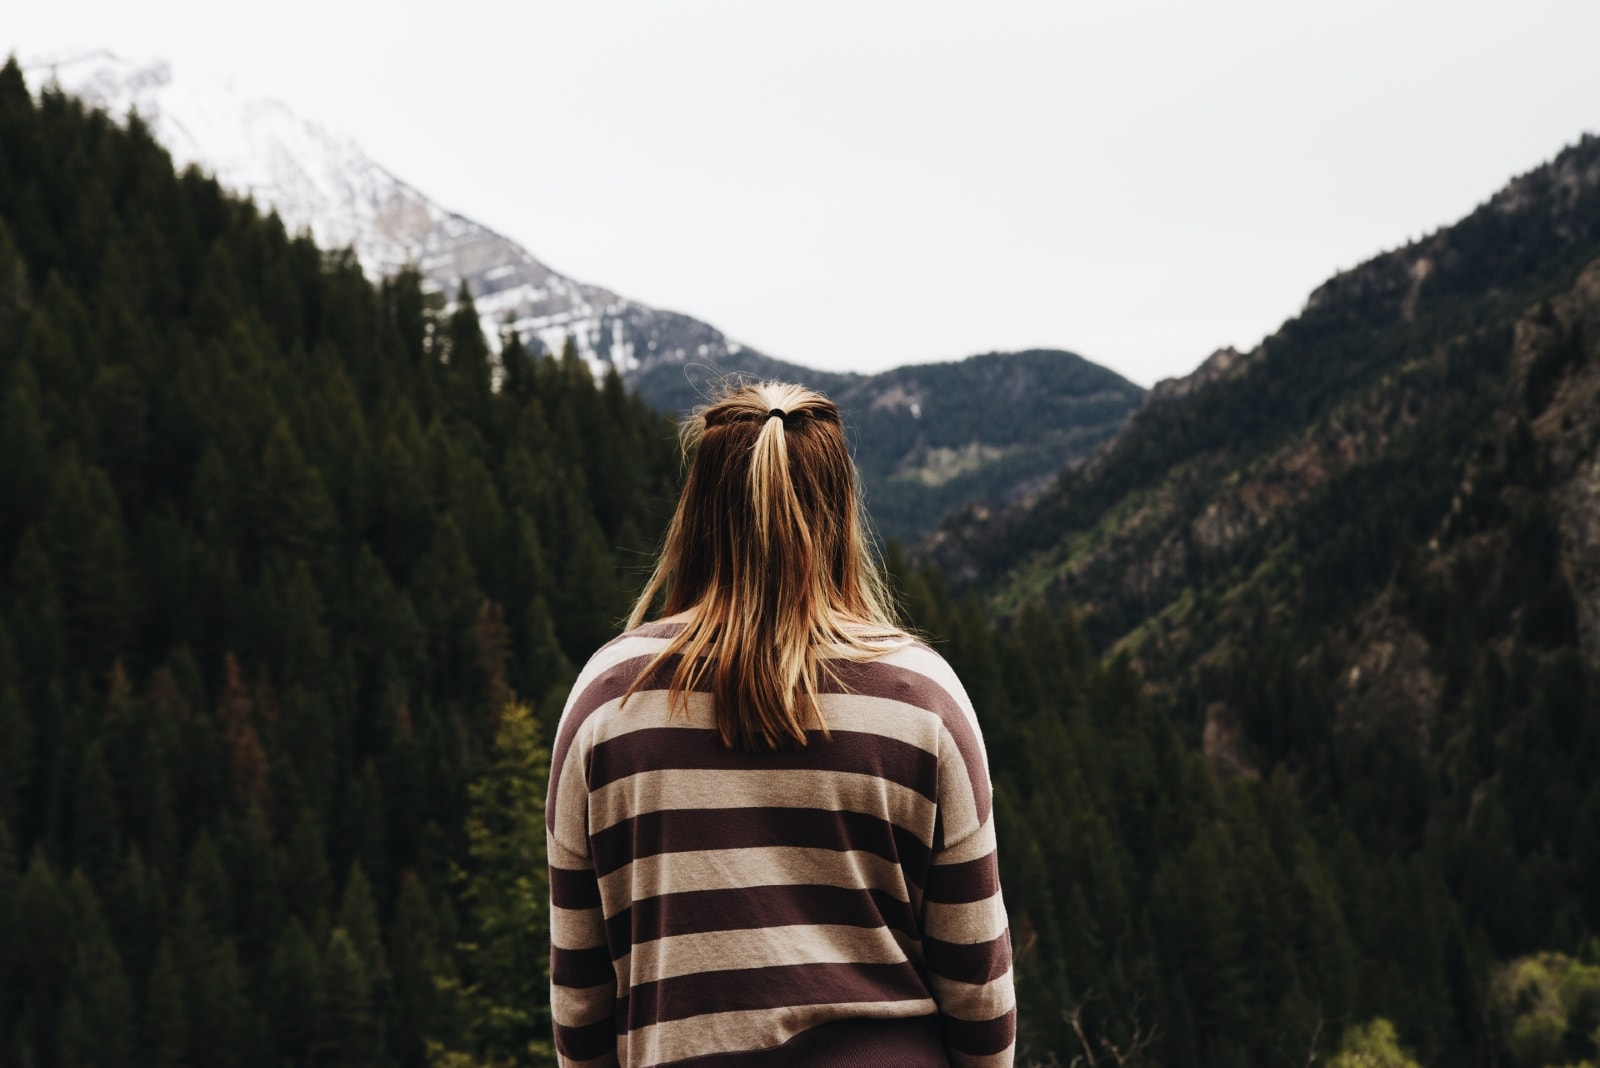 blonde woman in striped top looking at mountain